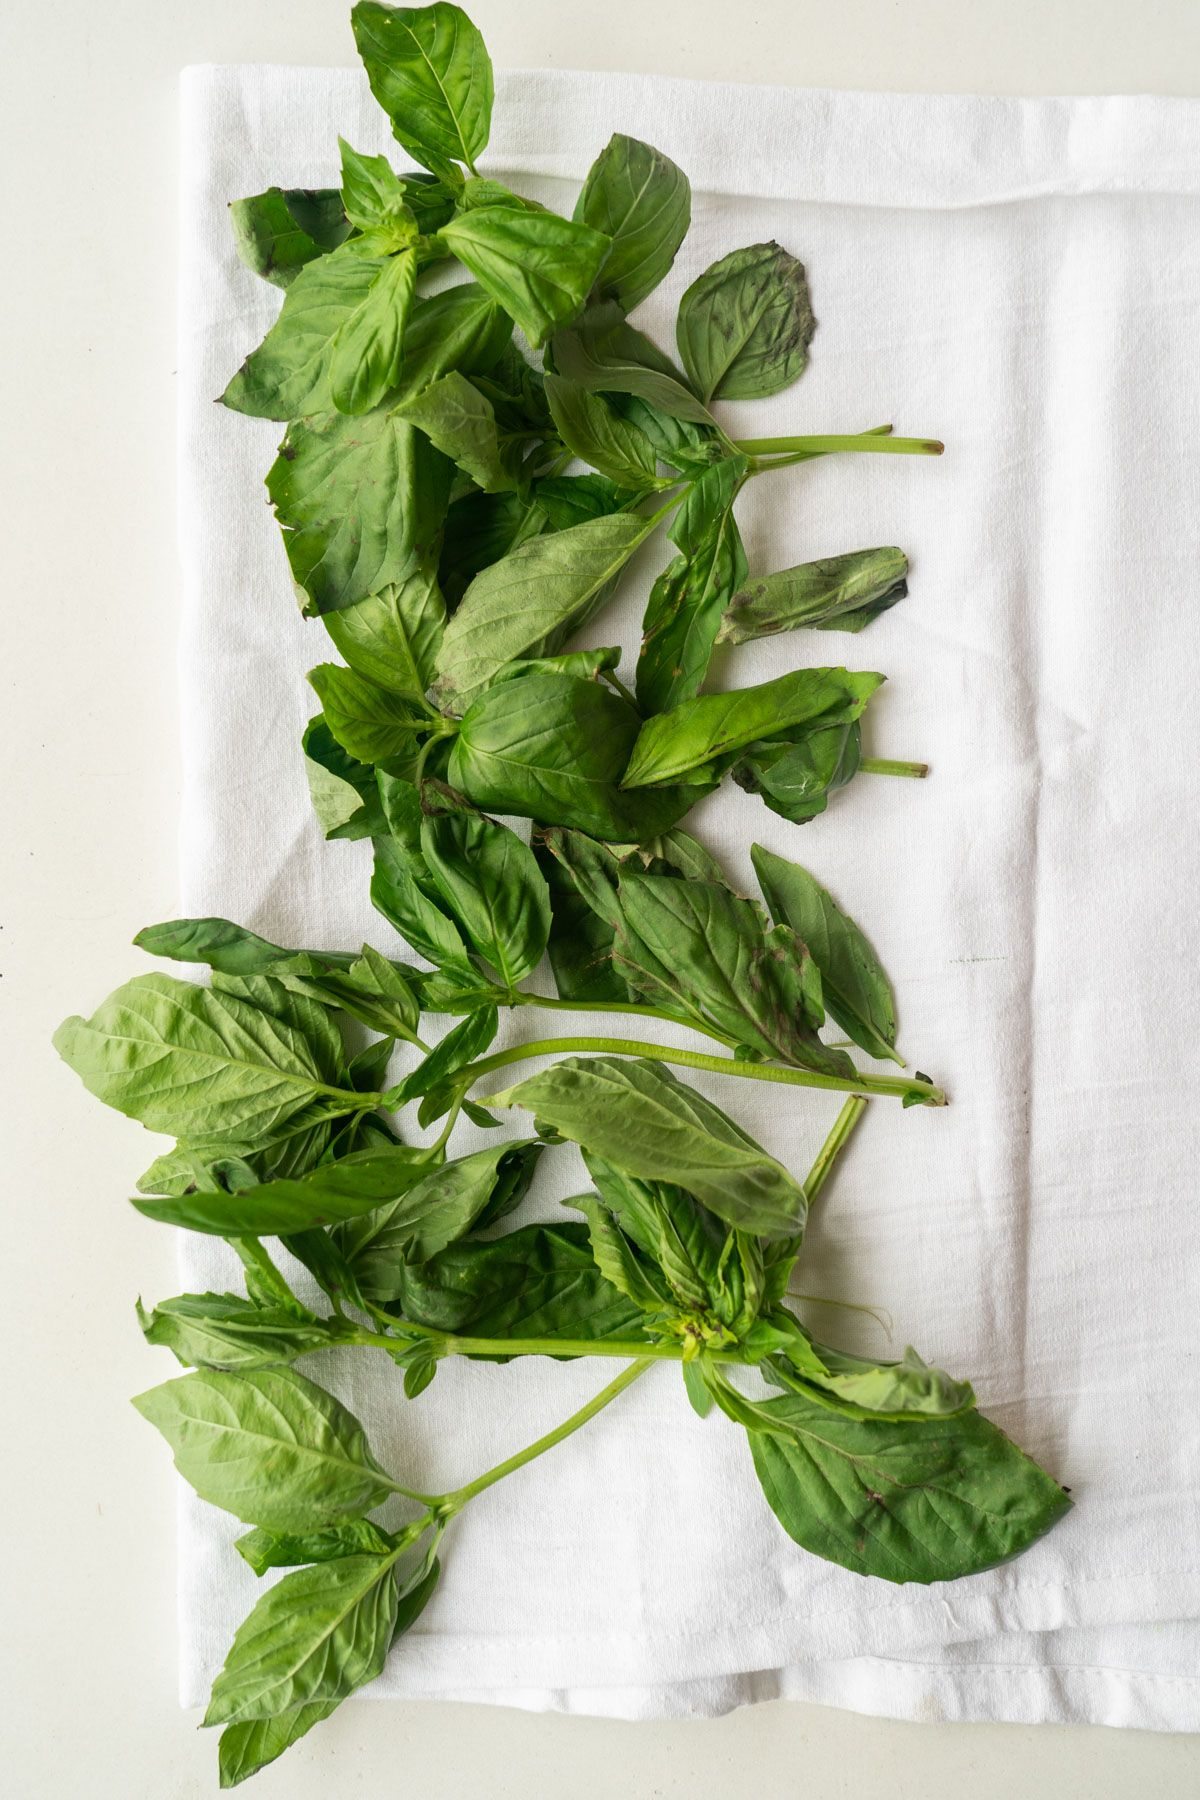 How To Dry Basil In The Oven